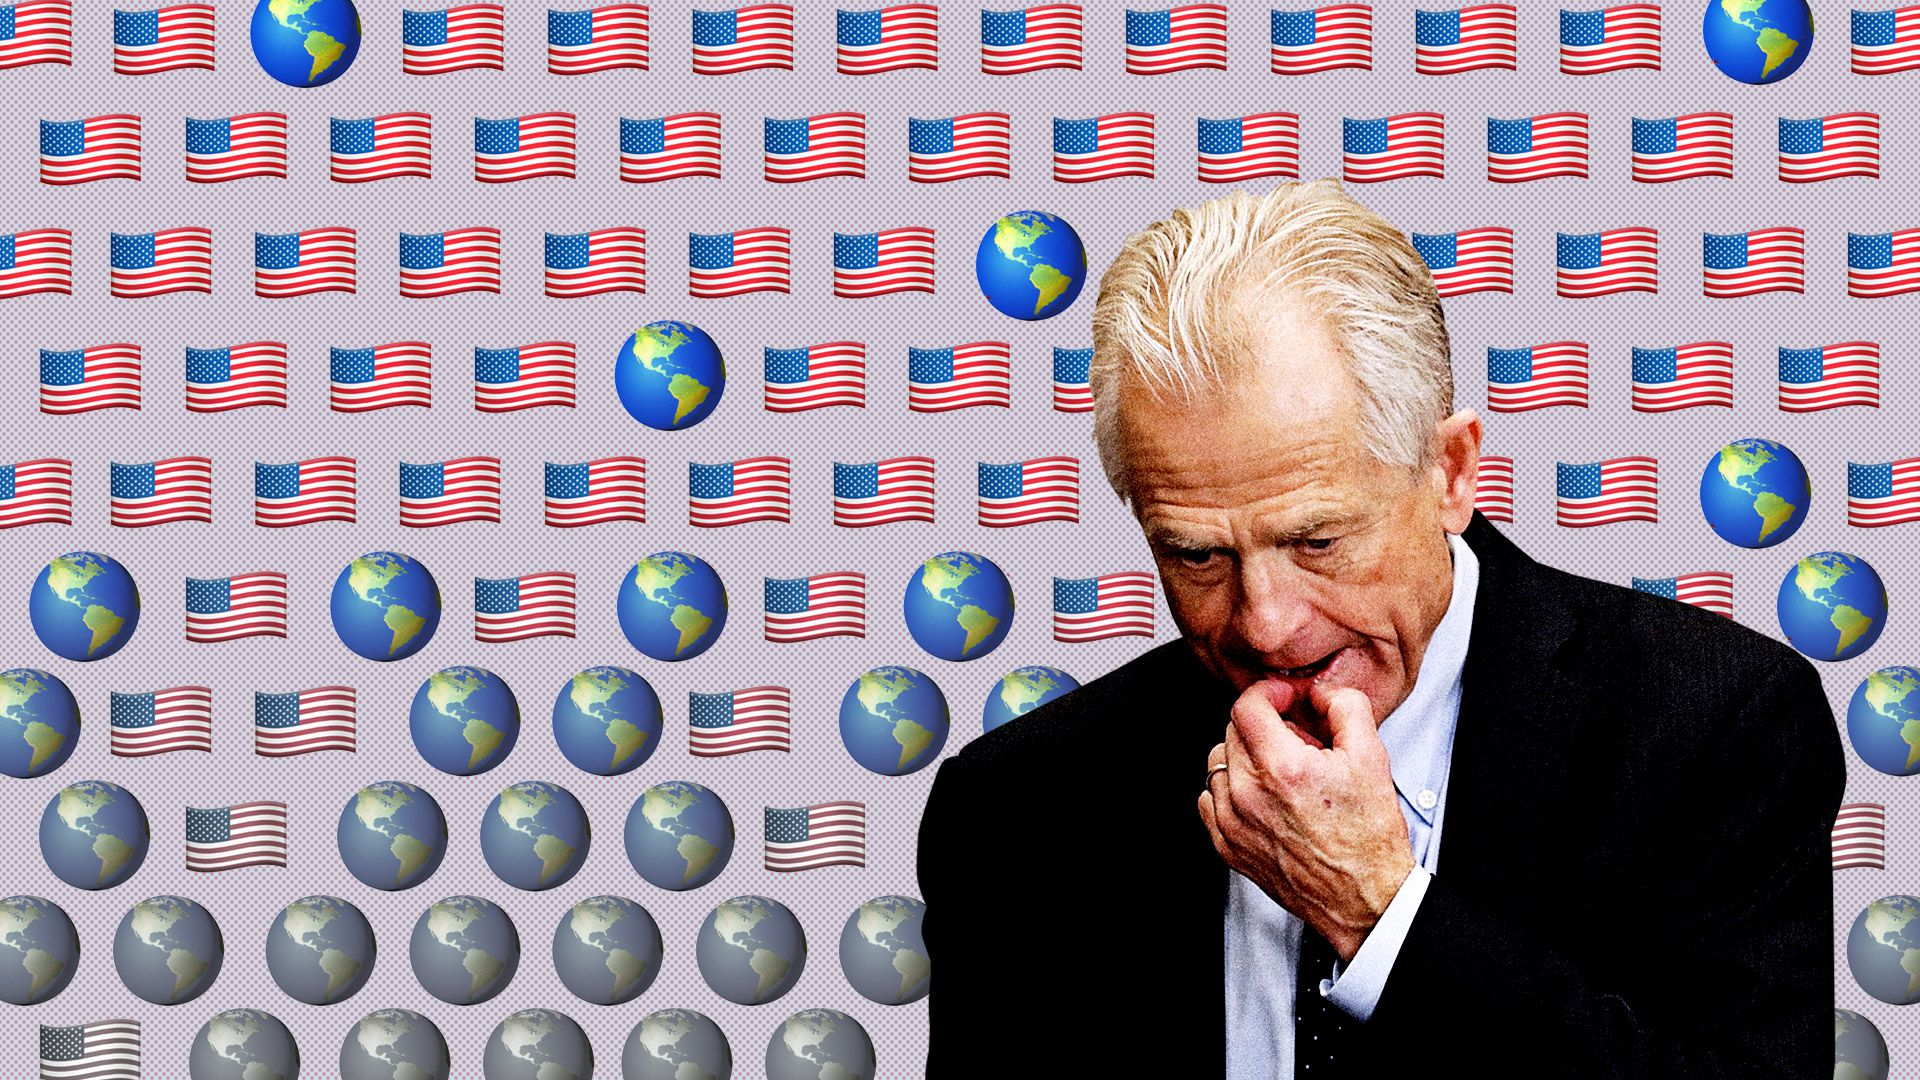 Peter Navarro against a backdrop of globes and American flags